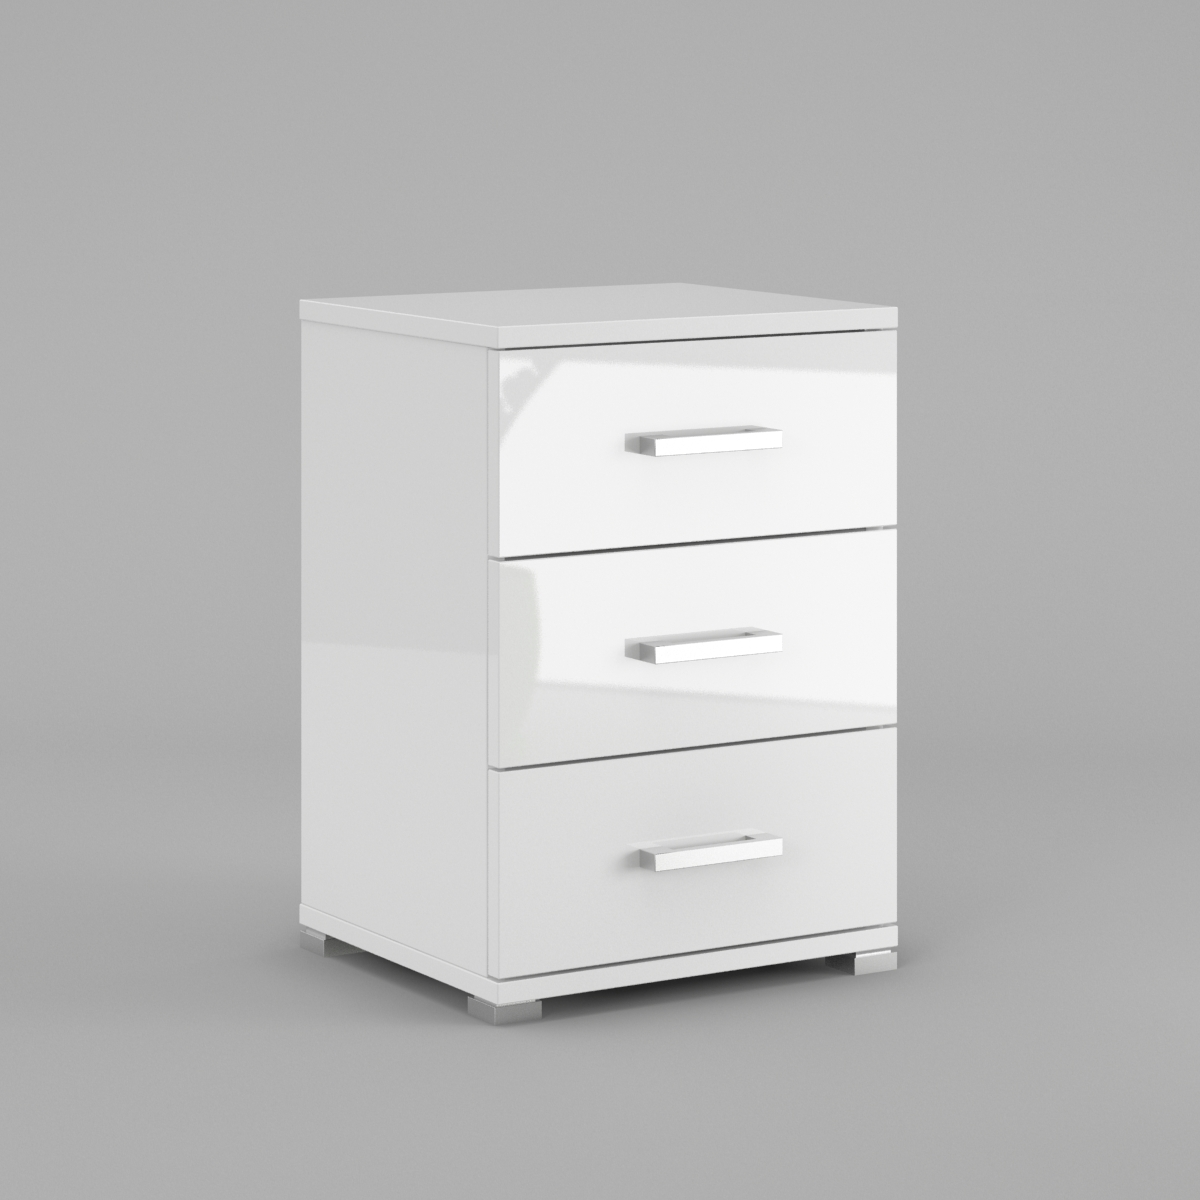 White Gloss Drawers Neli 3 Drawers Bedside Cabinets White High Gloss And